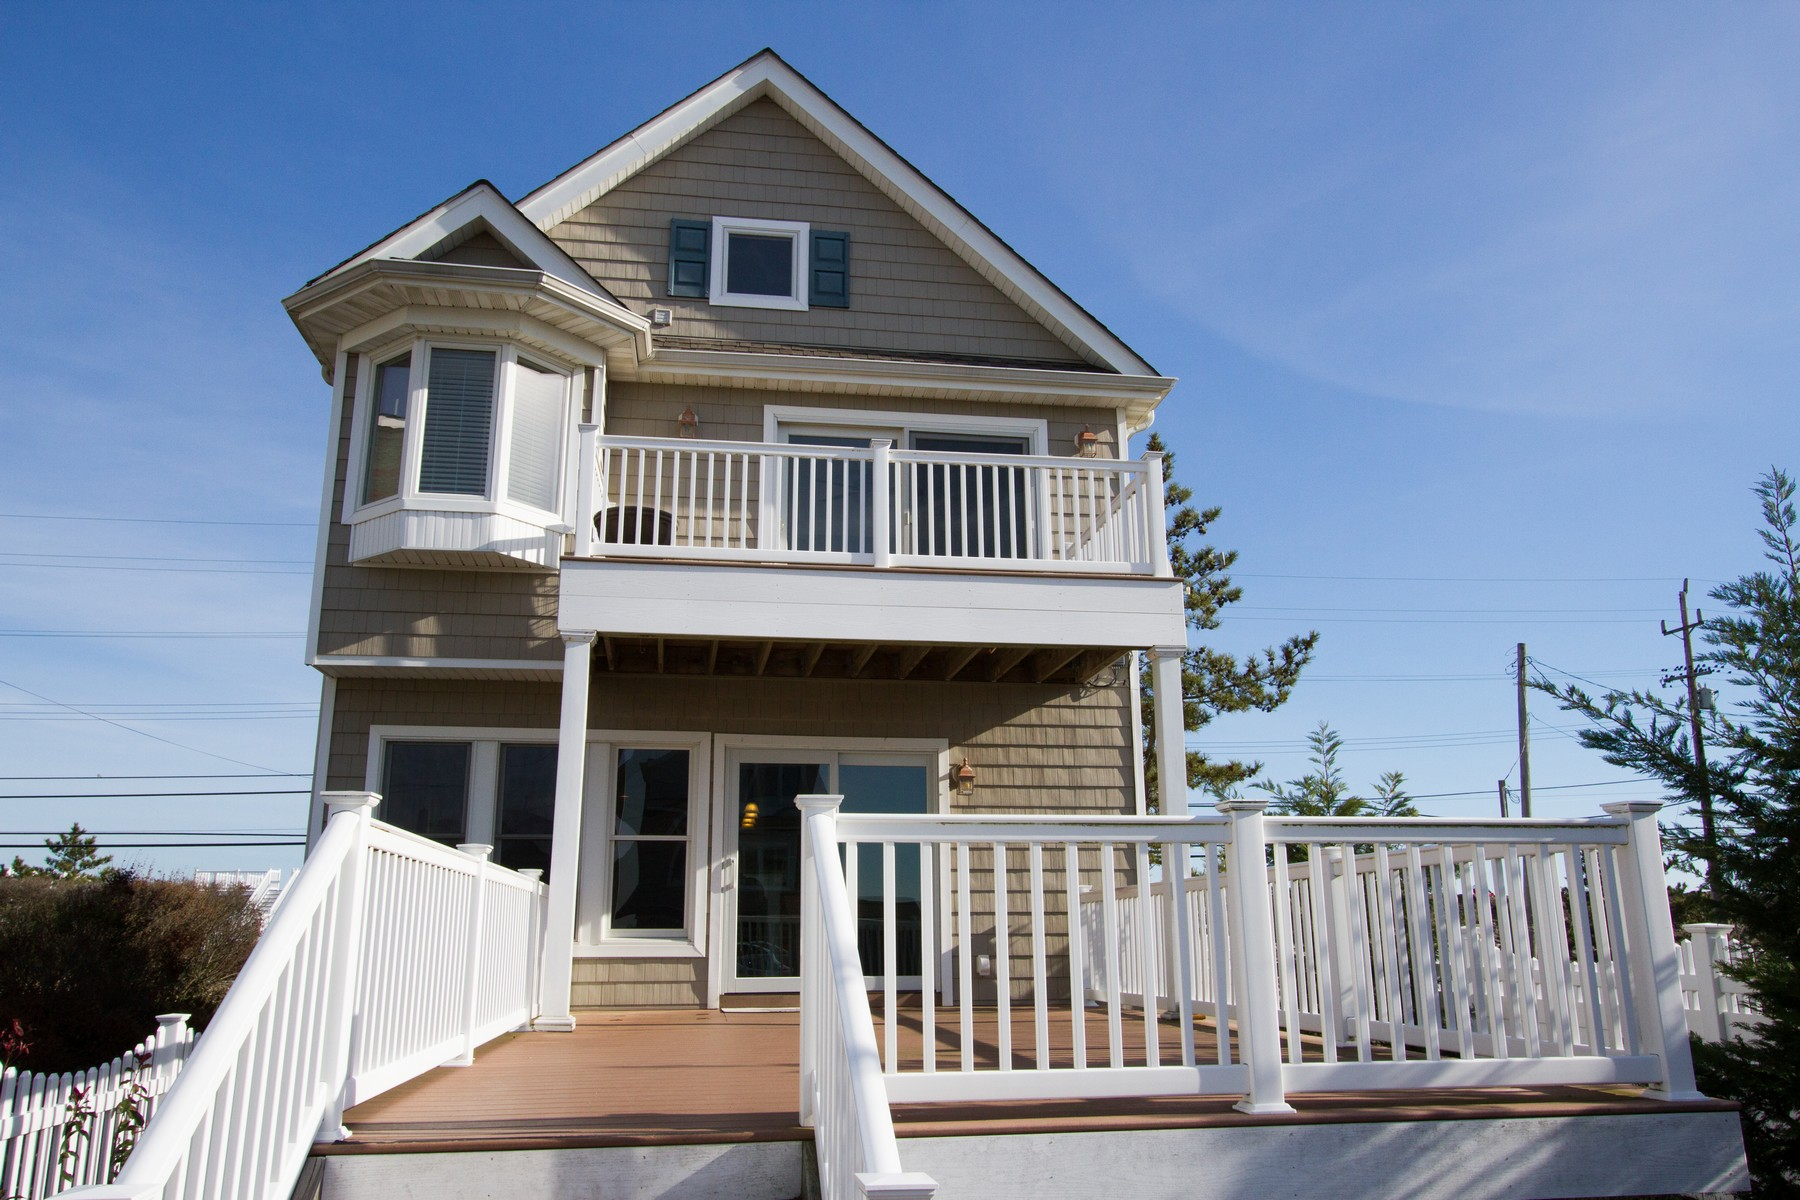 Single Family Home for Sale at Renovated Beach Colonial 616 Ocean Ave Sea Bright, New Jersey 07760 United States